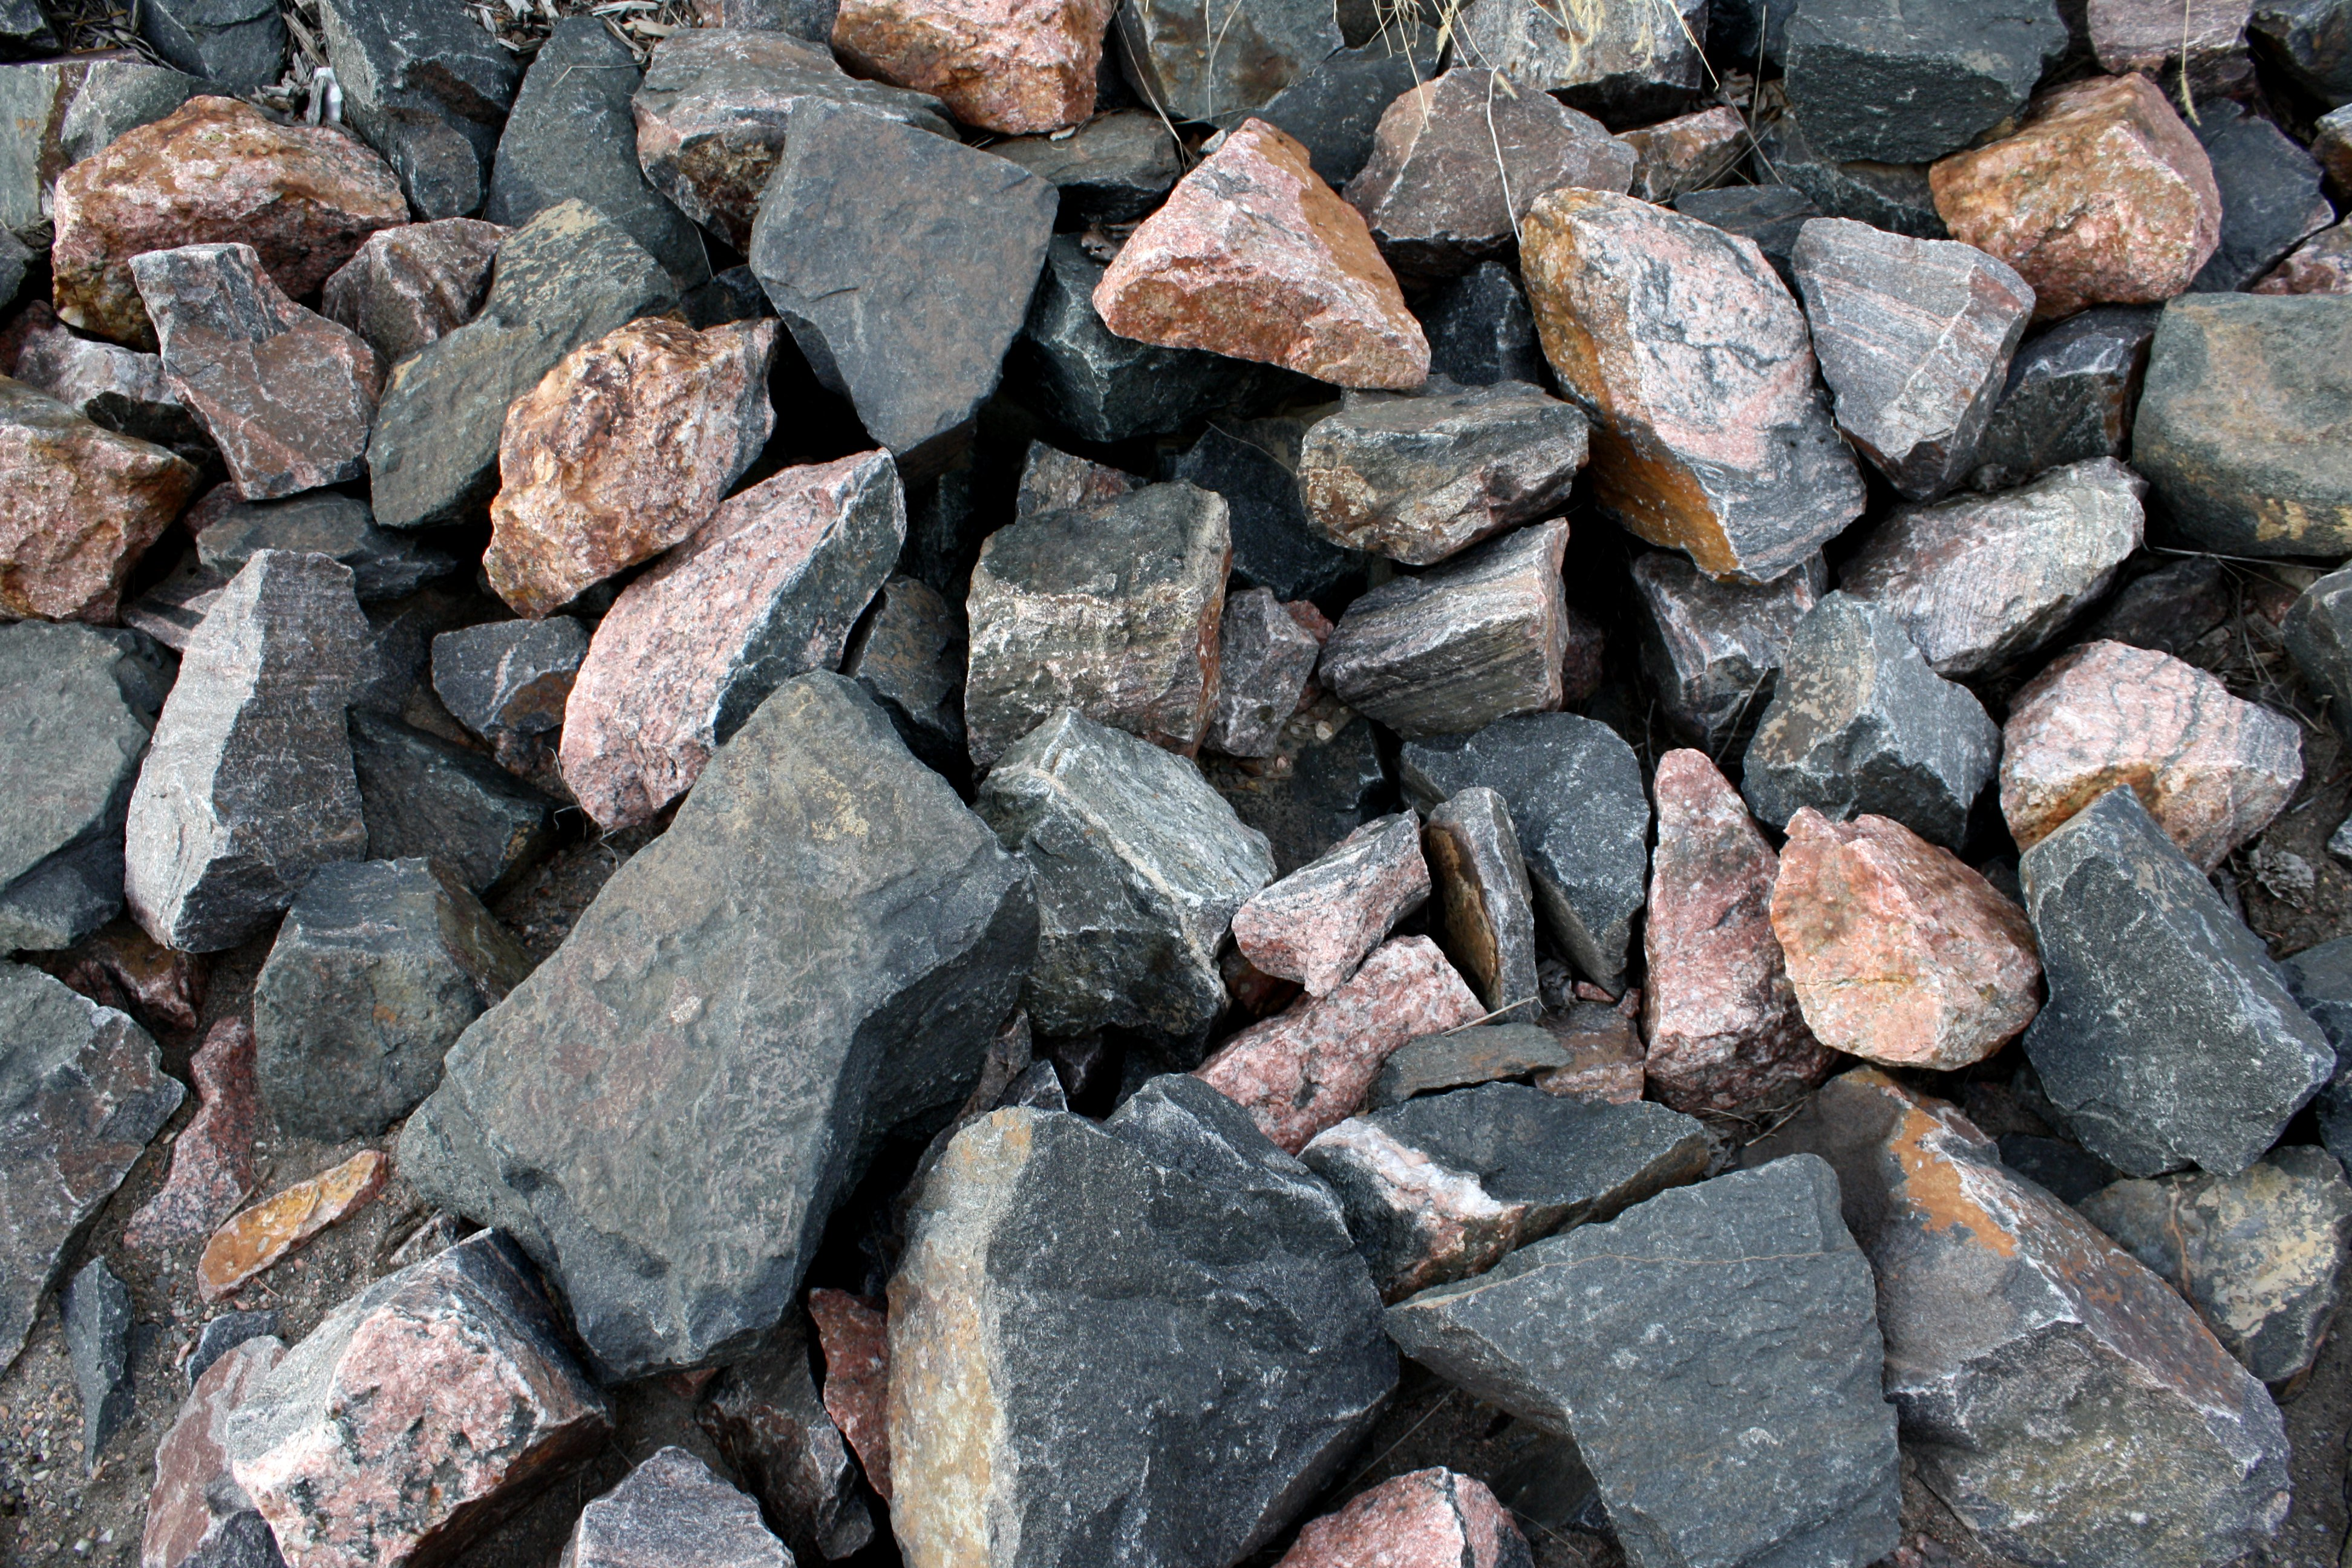 Big Black and Red Rocks Texture Picture | Free Photograph | Photos ... Rocks